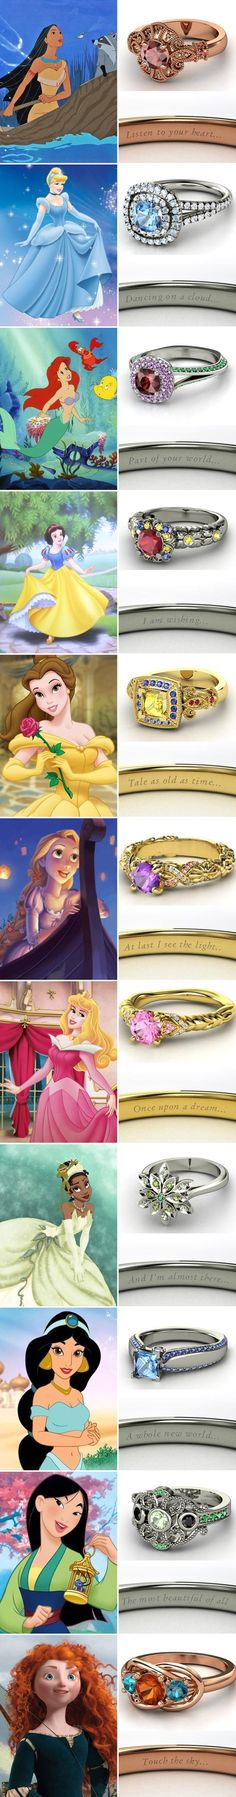 Inject Some Diehard Disney Princess Fandom Into Your Wedding